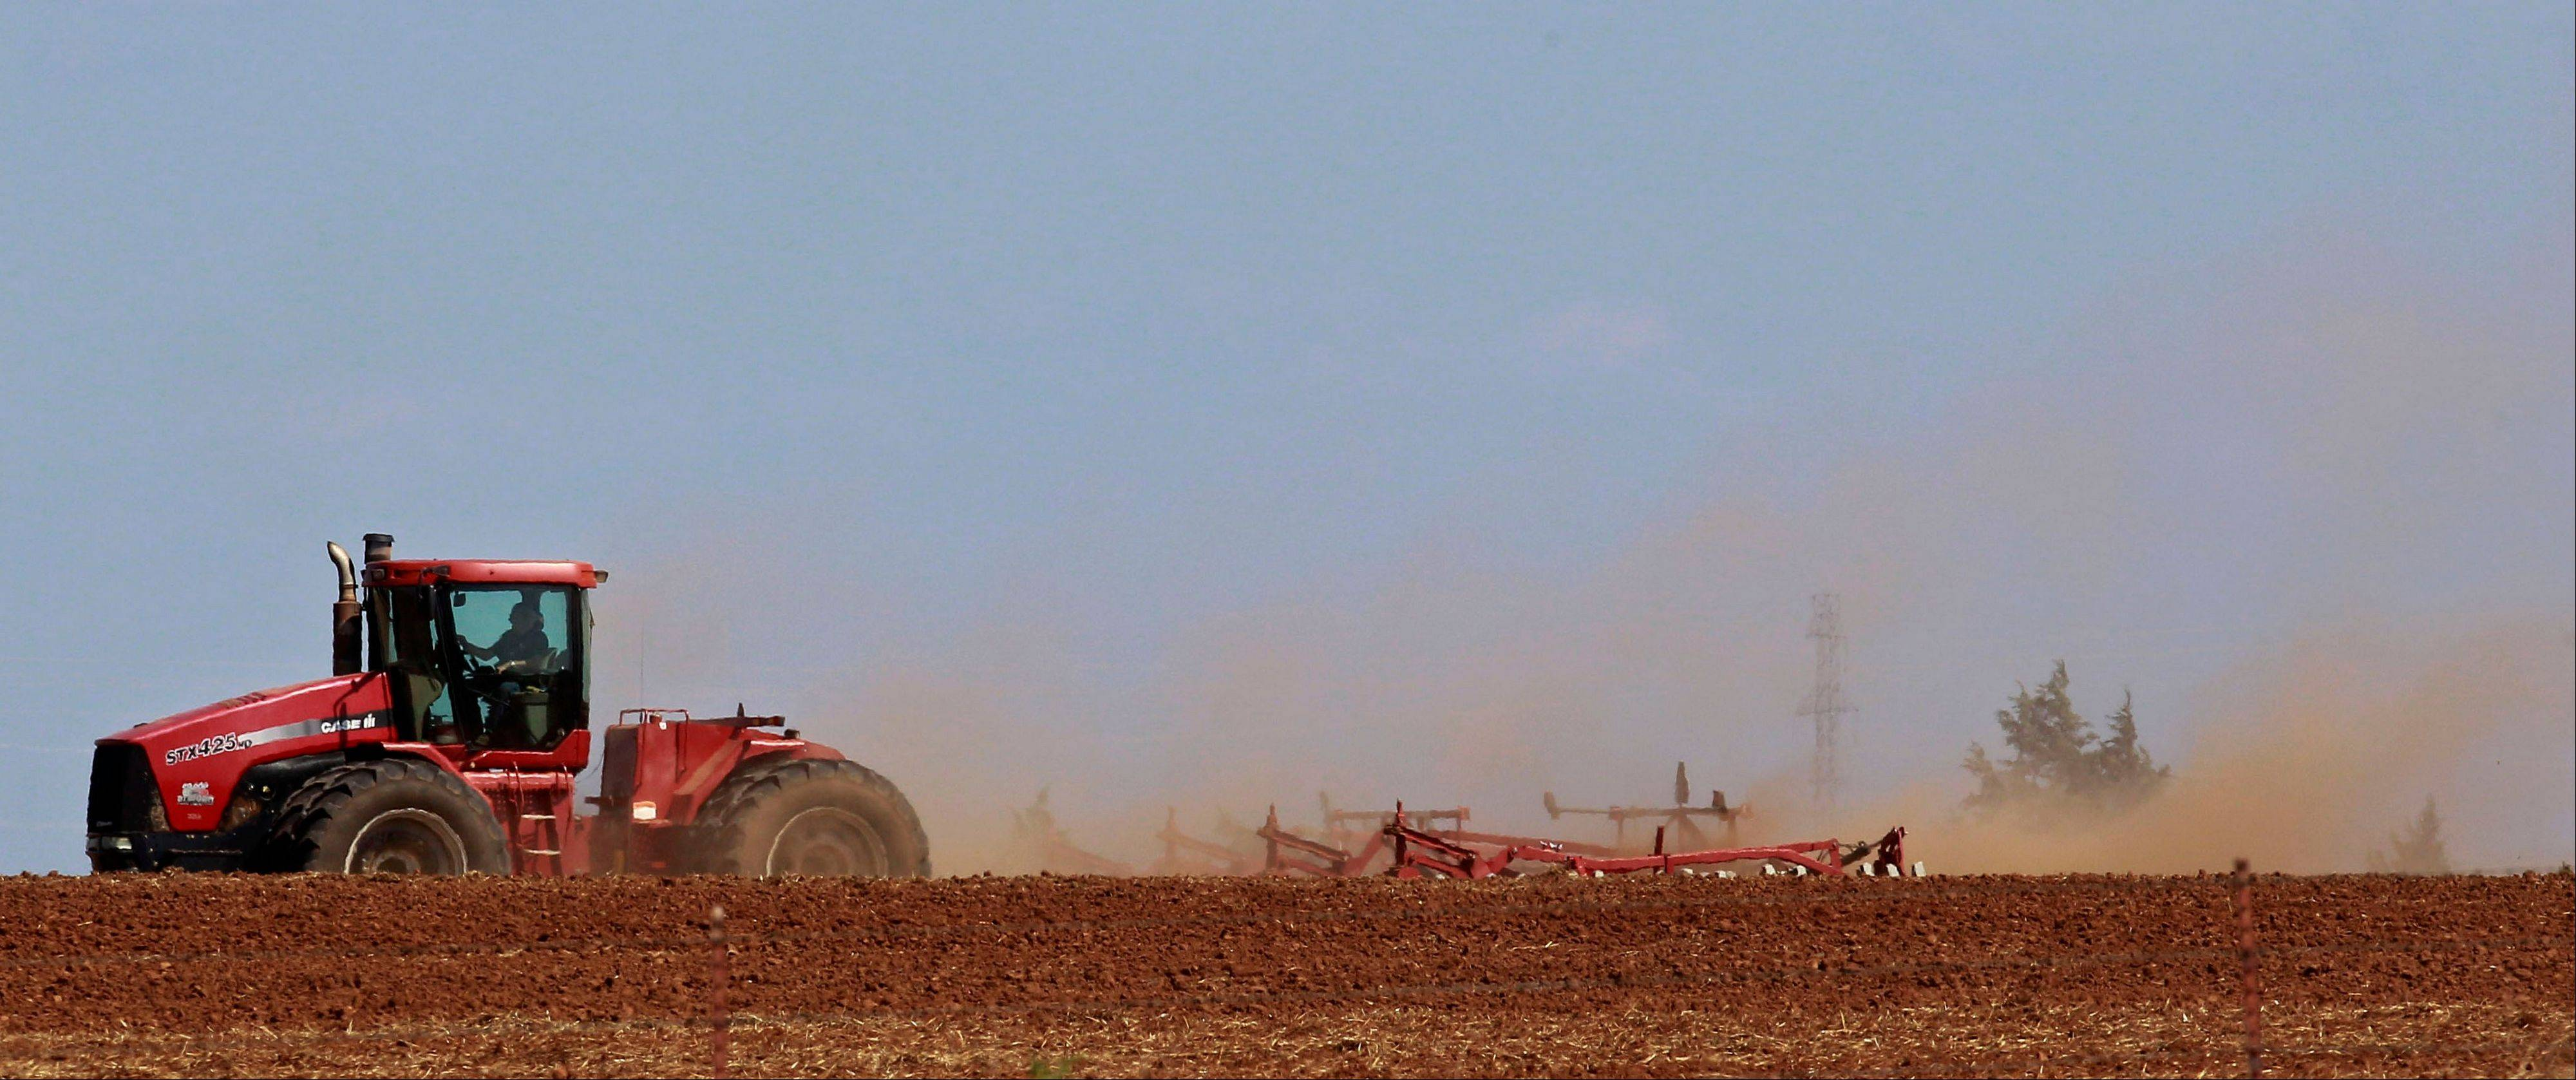 Dust swirls behind his tractor as a farmer works his dry field near Edmond, Okla., Thursday, Aug. 30, 2012. Exceptional drought conditions have eased slightly in parts of Oklahoma, though most of the state remains in extreme drought.